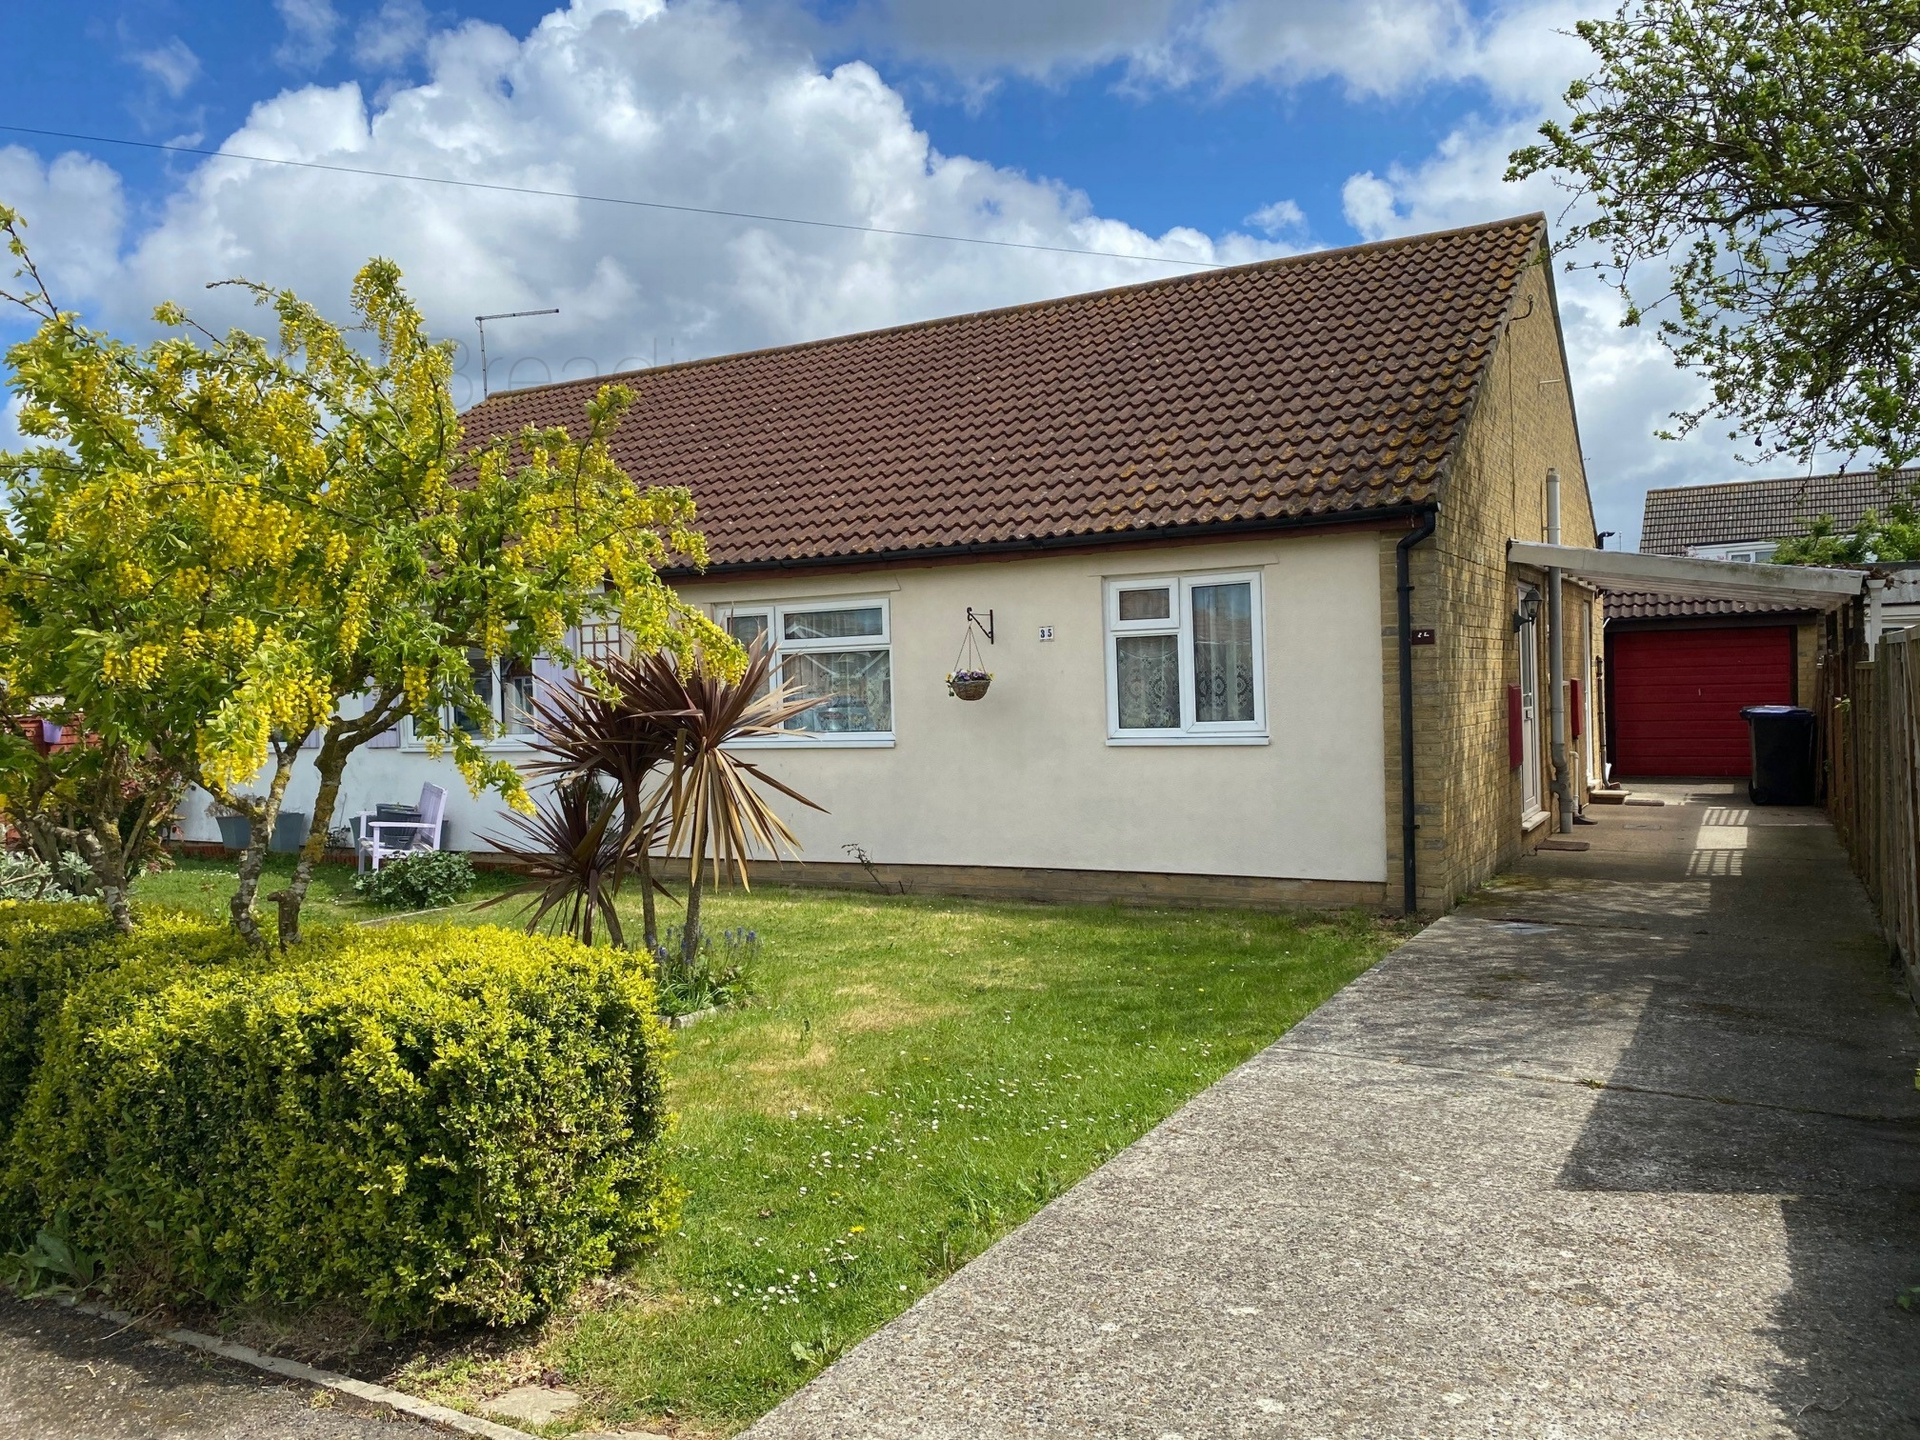 Rowland Crescent  Herne Bay  CT6